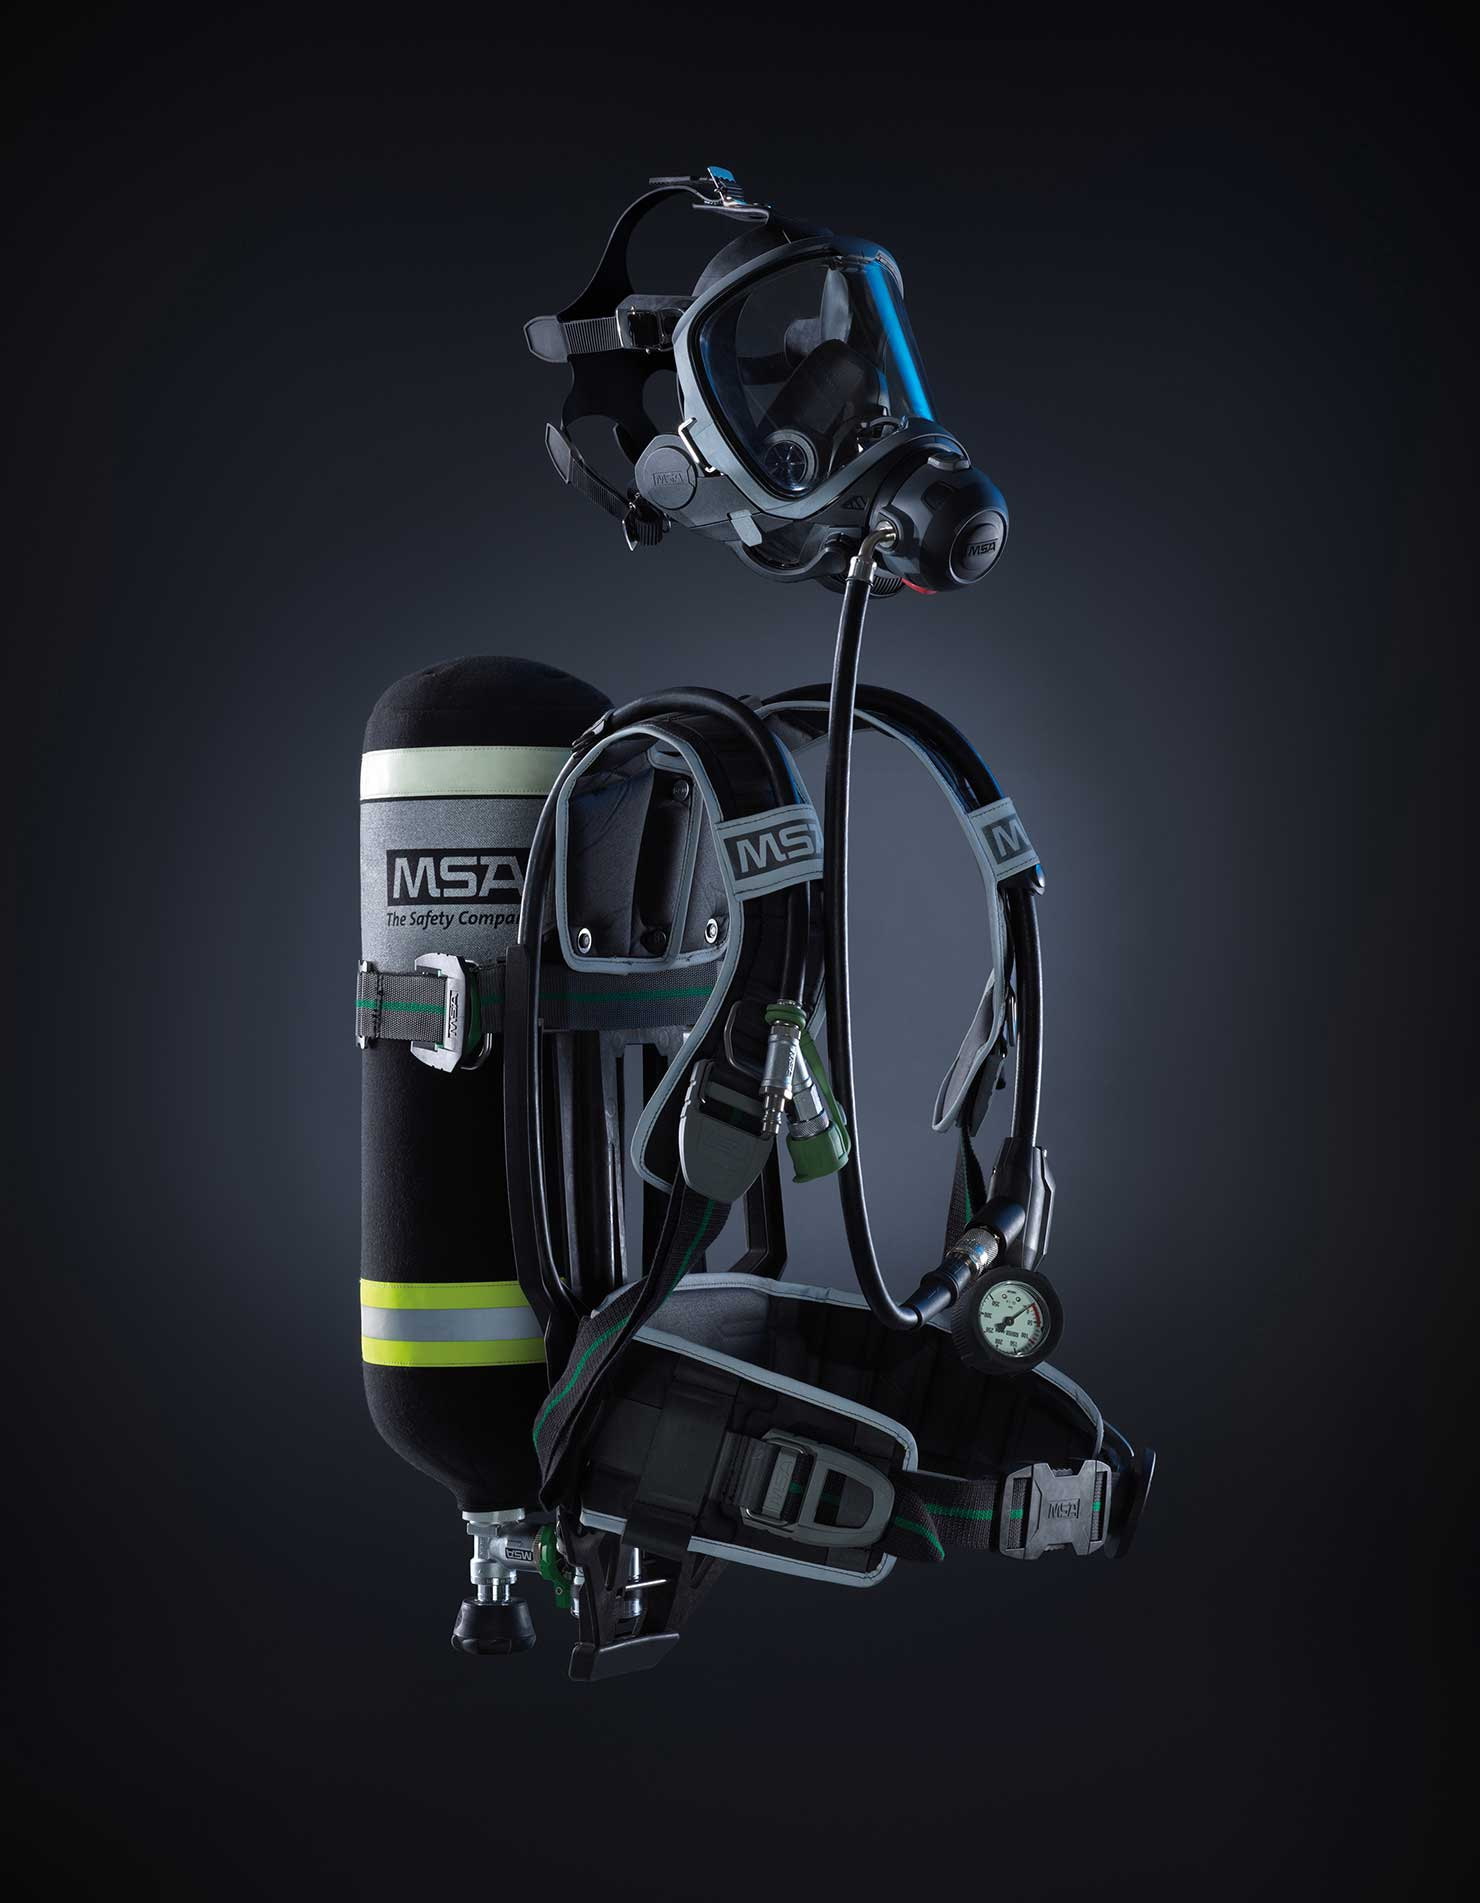 Product Image : M1 SCBA from MSA